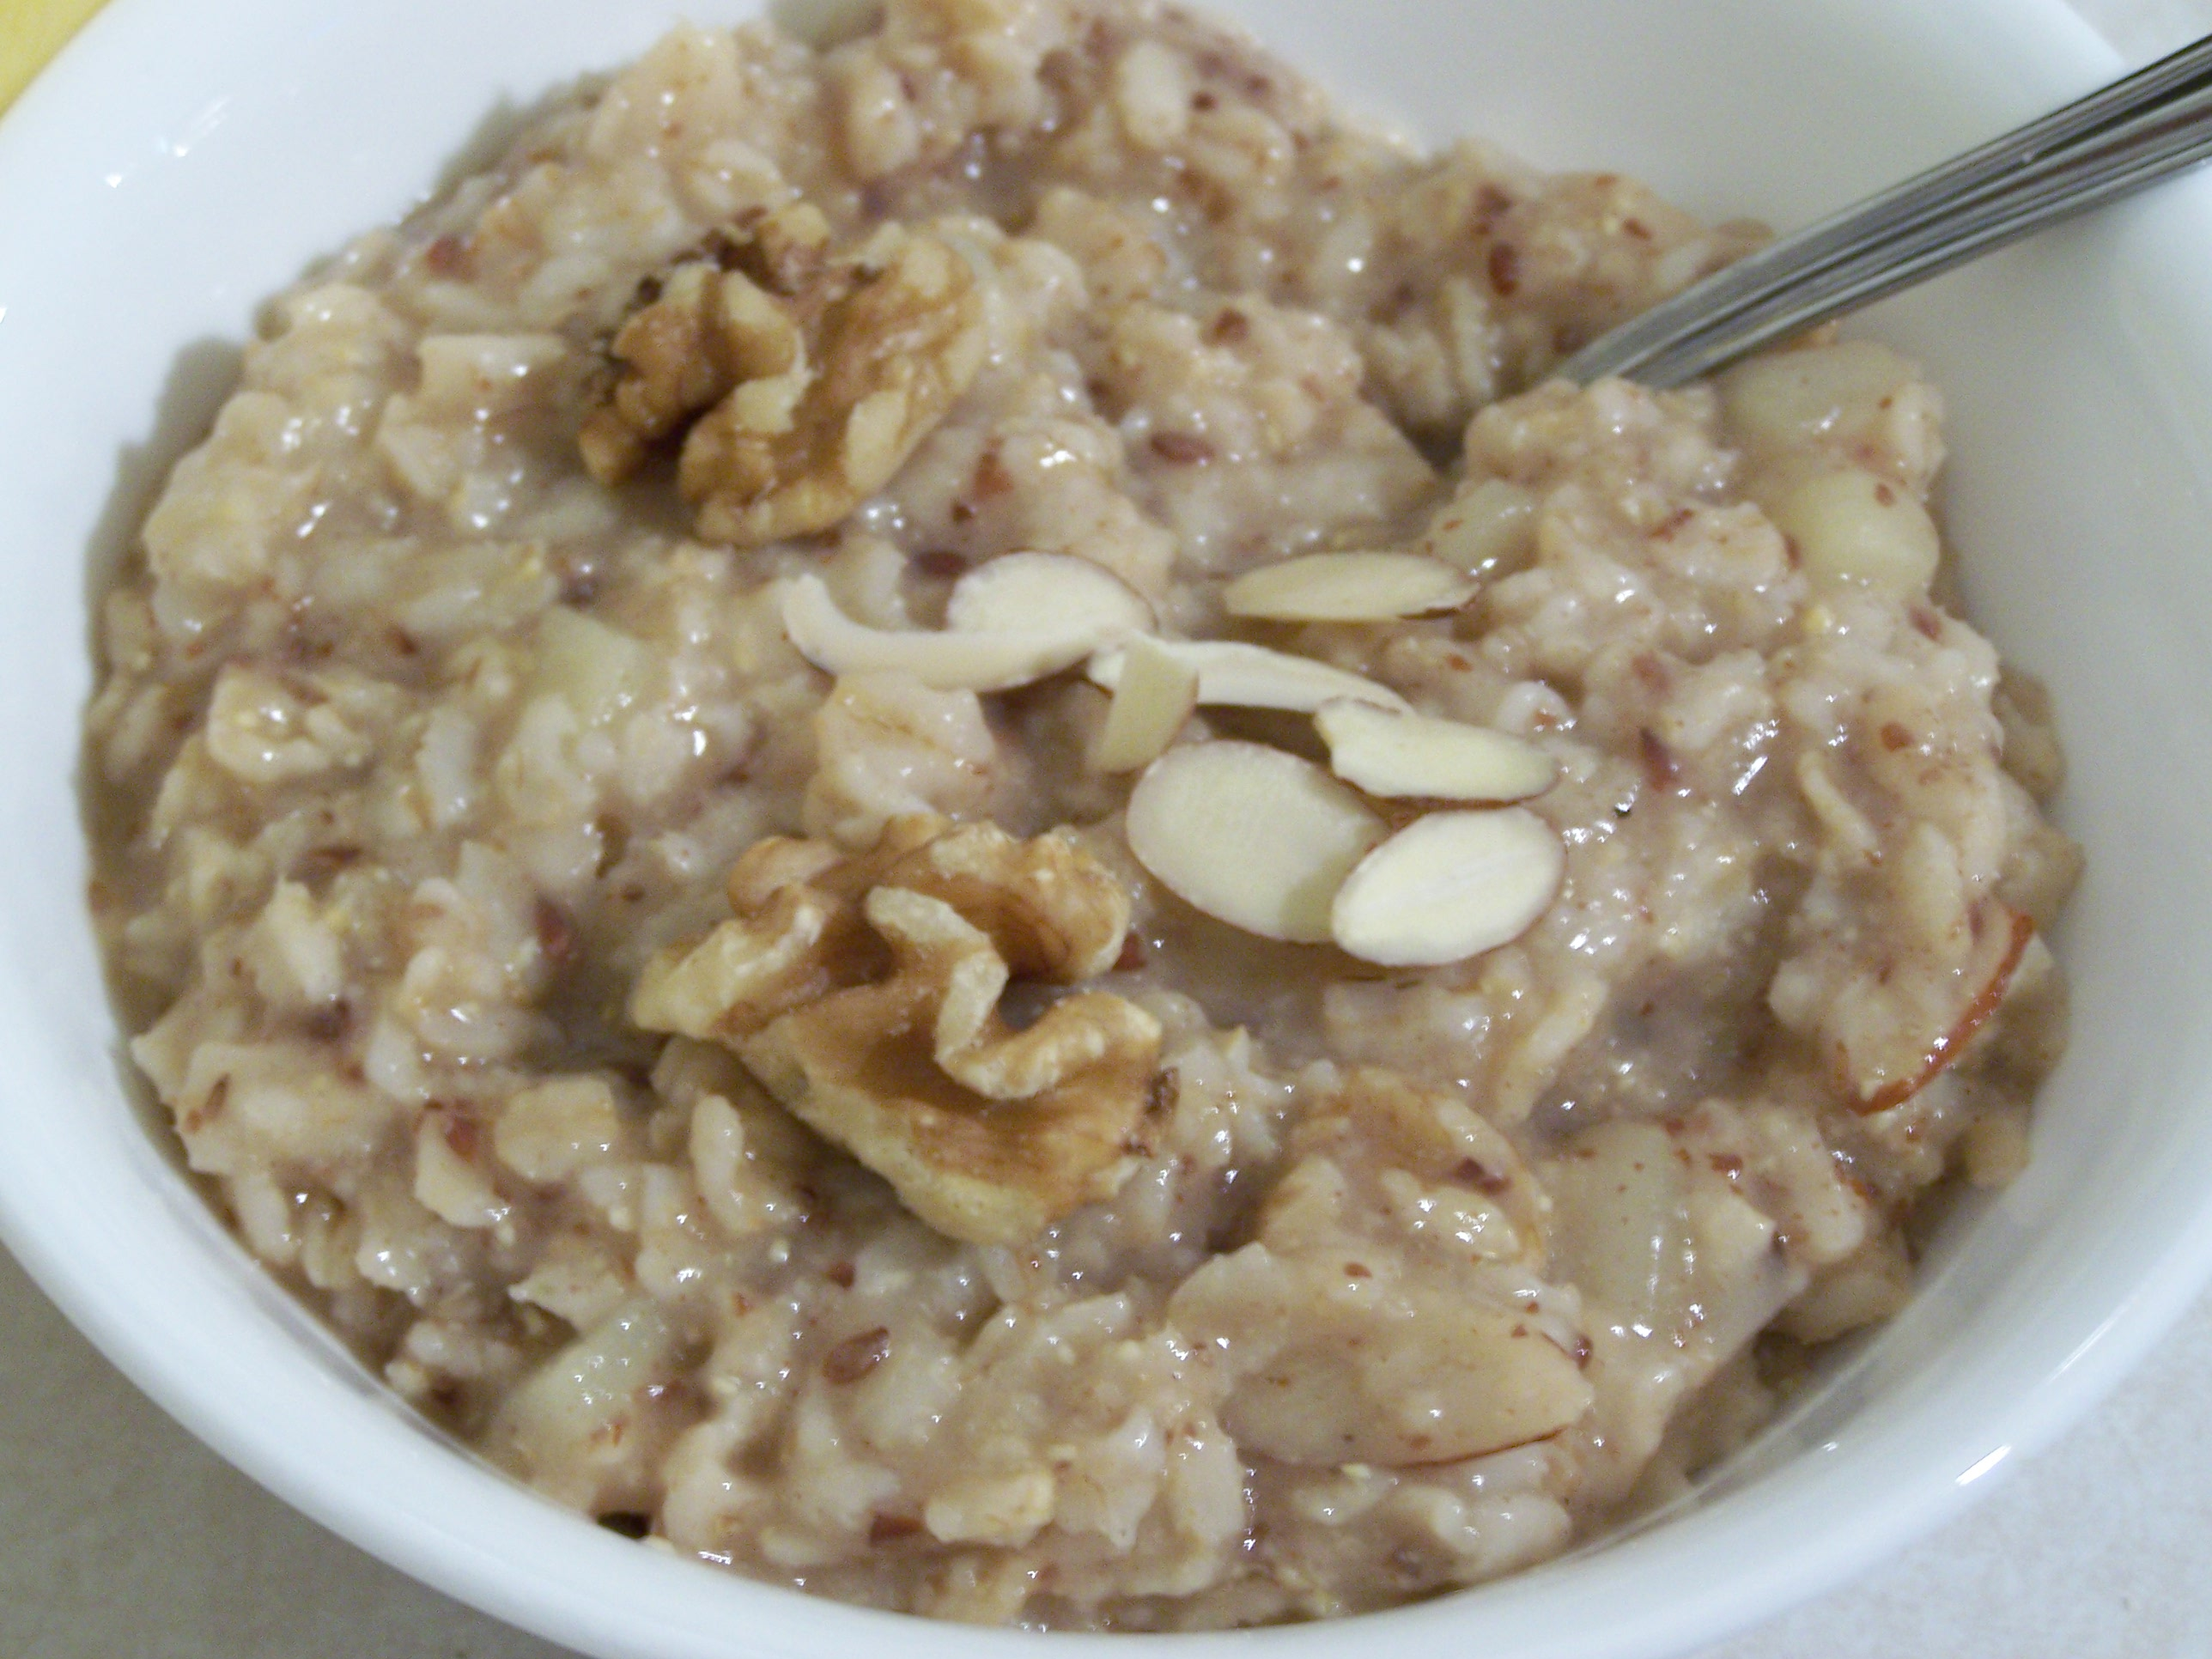 Nutty Apple Cinnamon Oatmeal - My Plant-Based Family